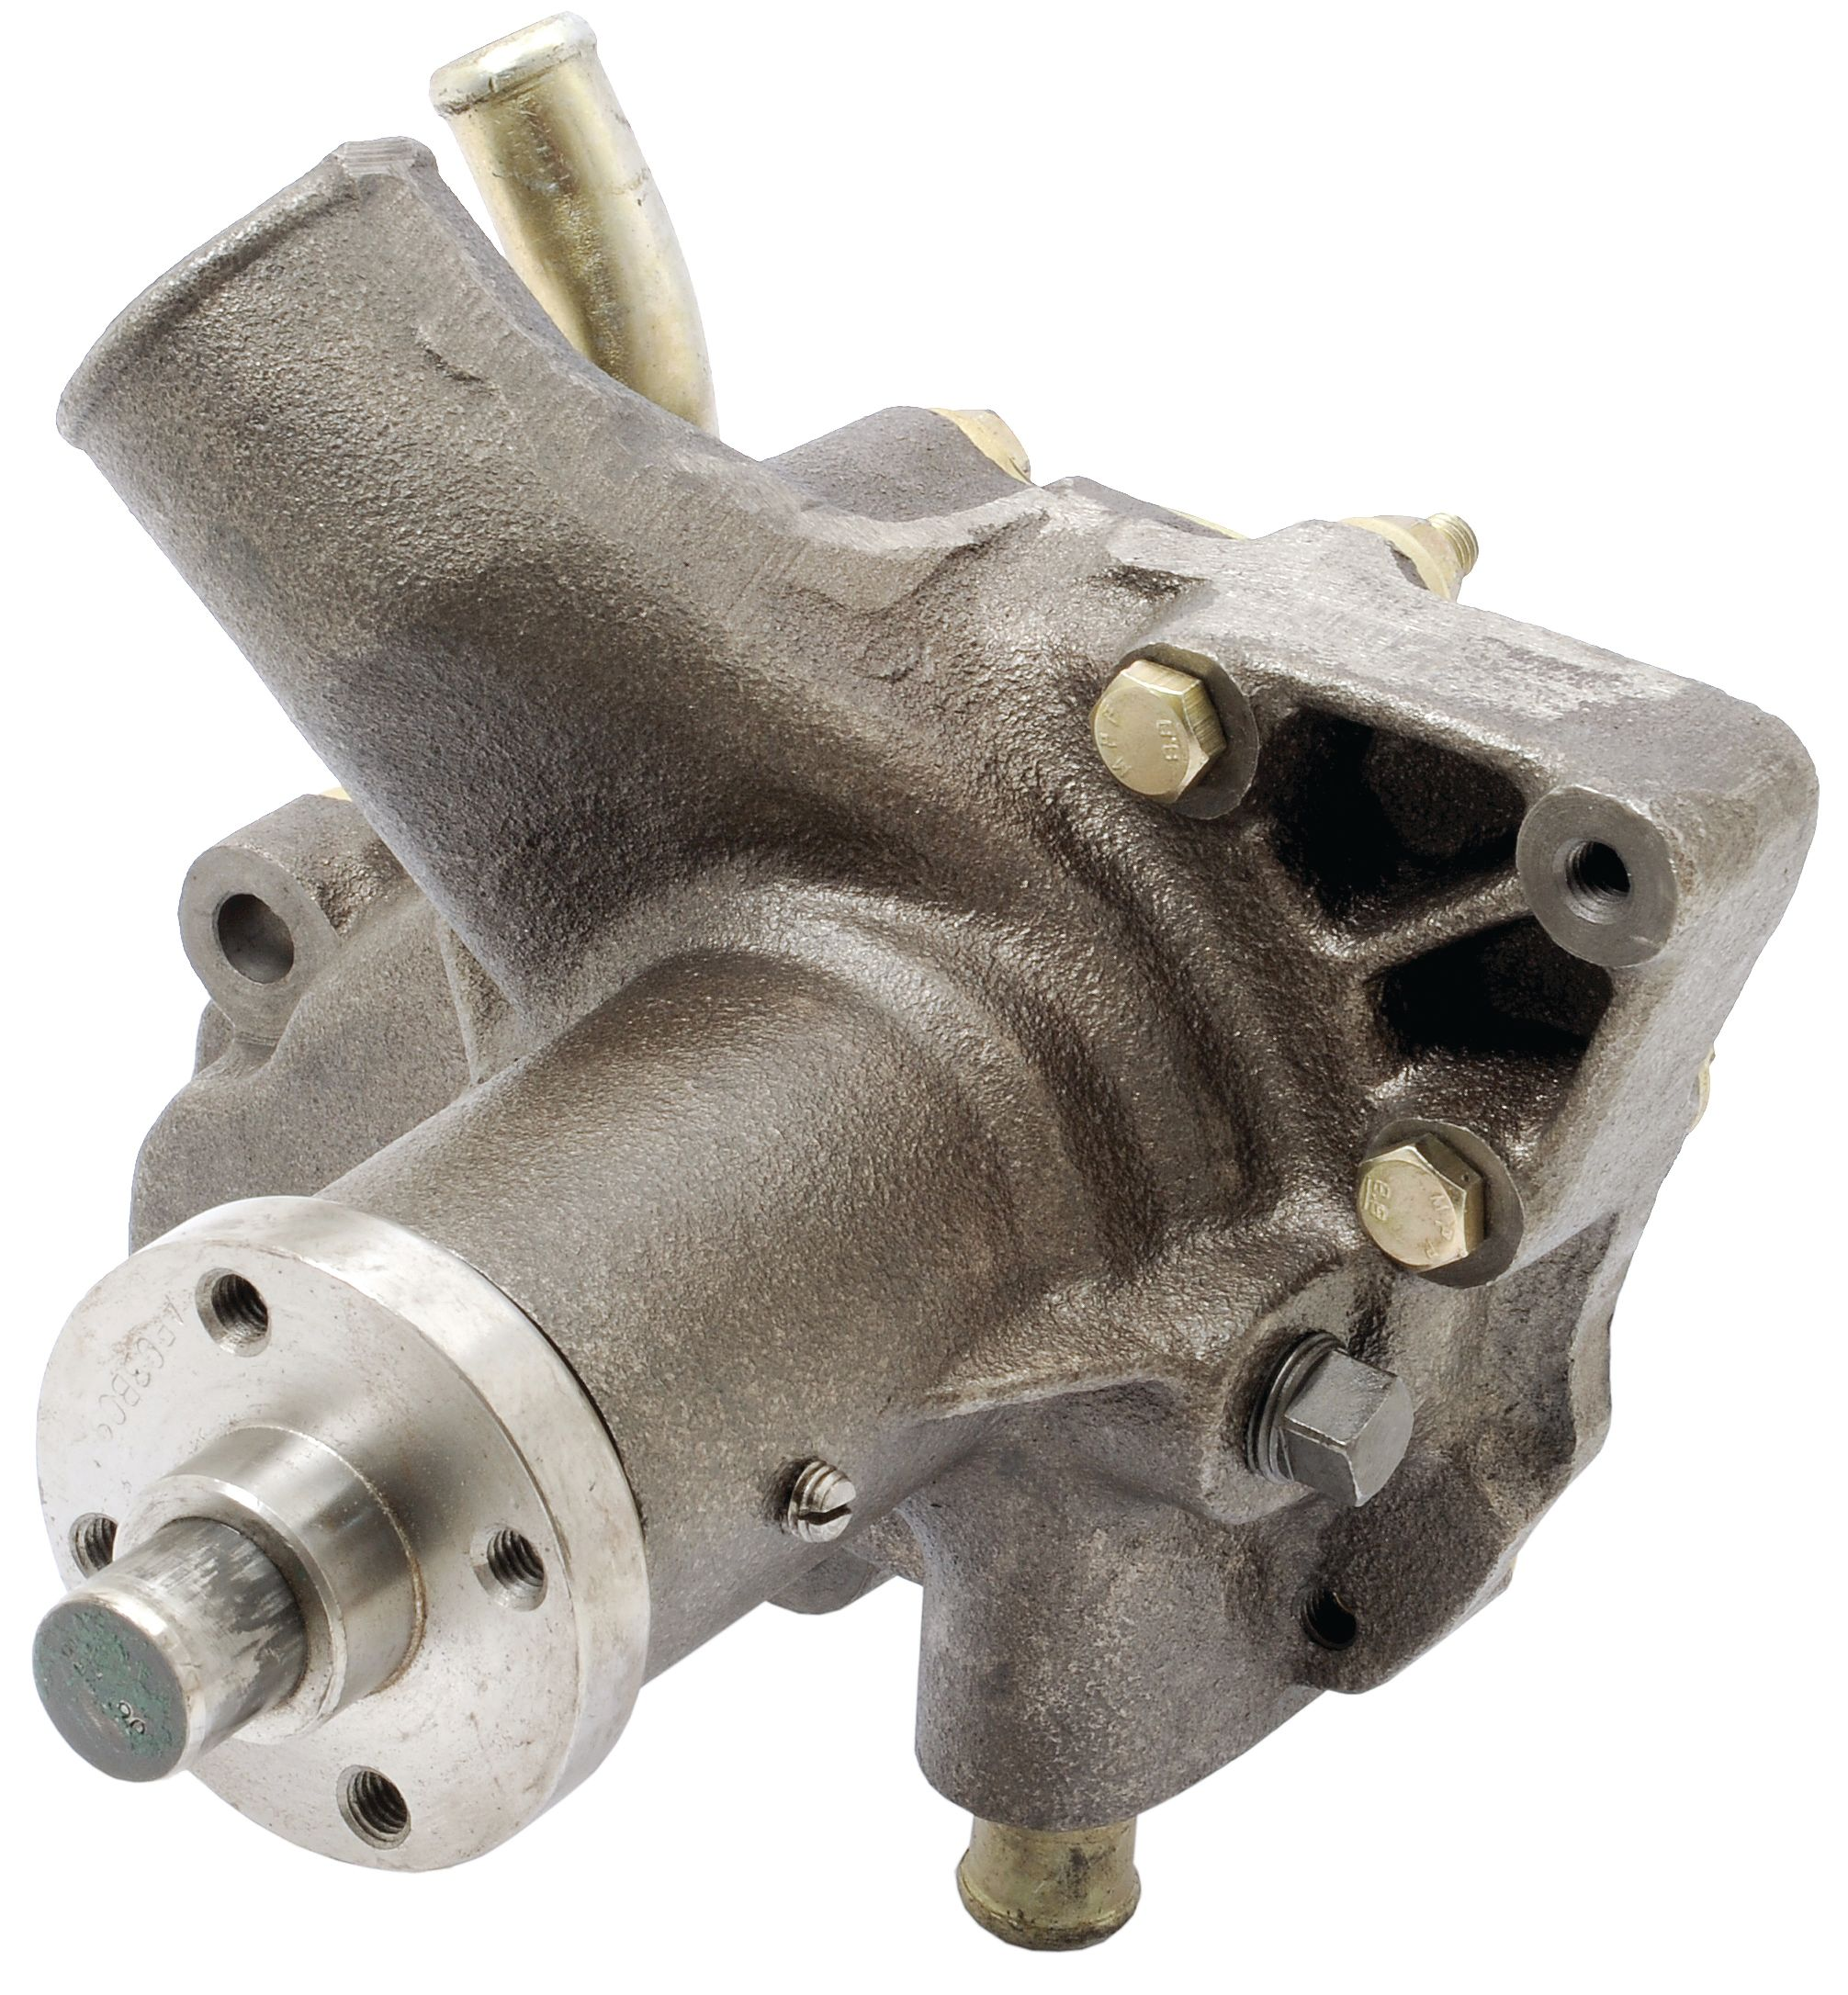 HURLIMANN WATER PUMP 39892